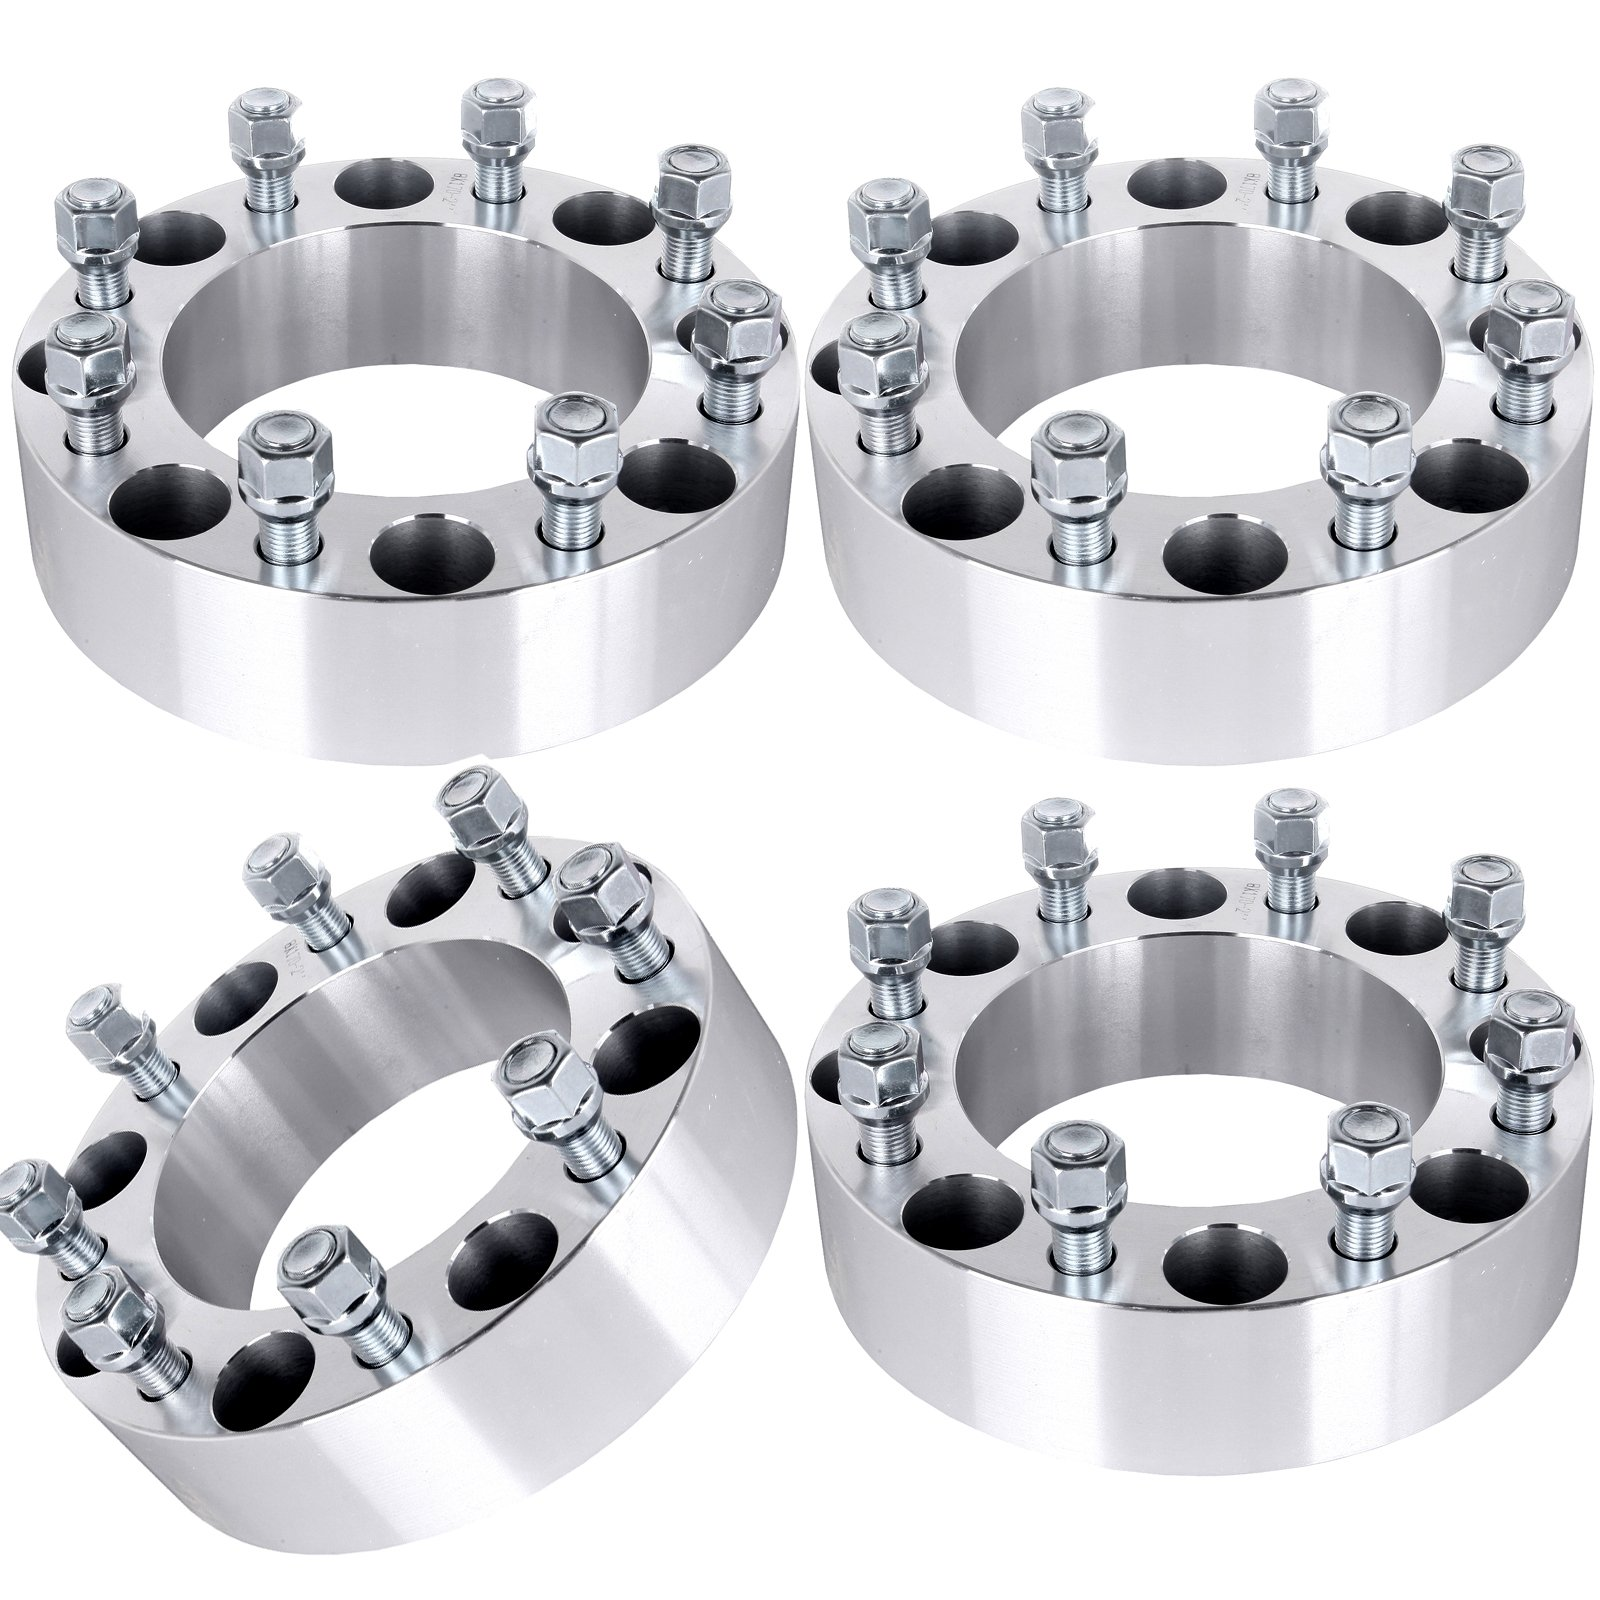 Wheel Spacers,SCITOO 4X 8 lug Wheel Spacer Adapters 8x170 to 8x170 for Ford F250 F350 2005-2013 Powerstroke 2 Inch Wheel Spacers 8x170 mm 14X1.5